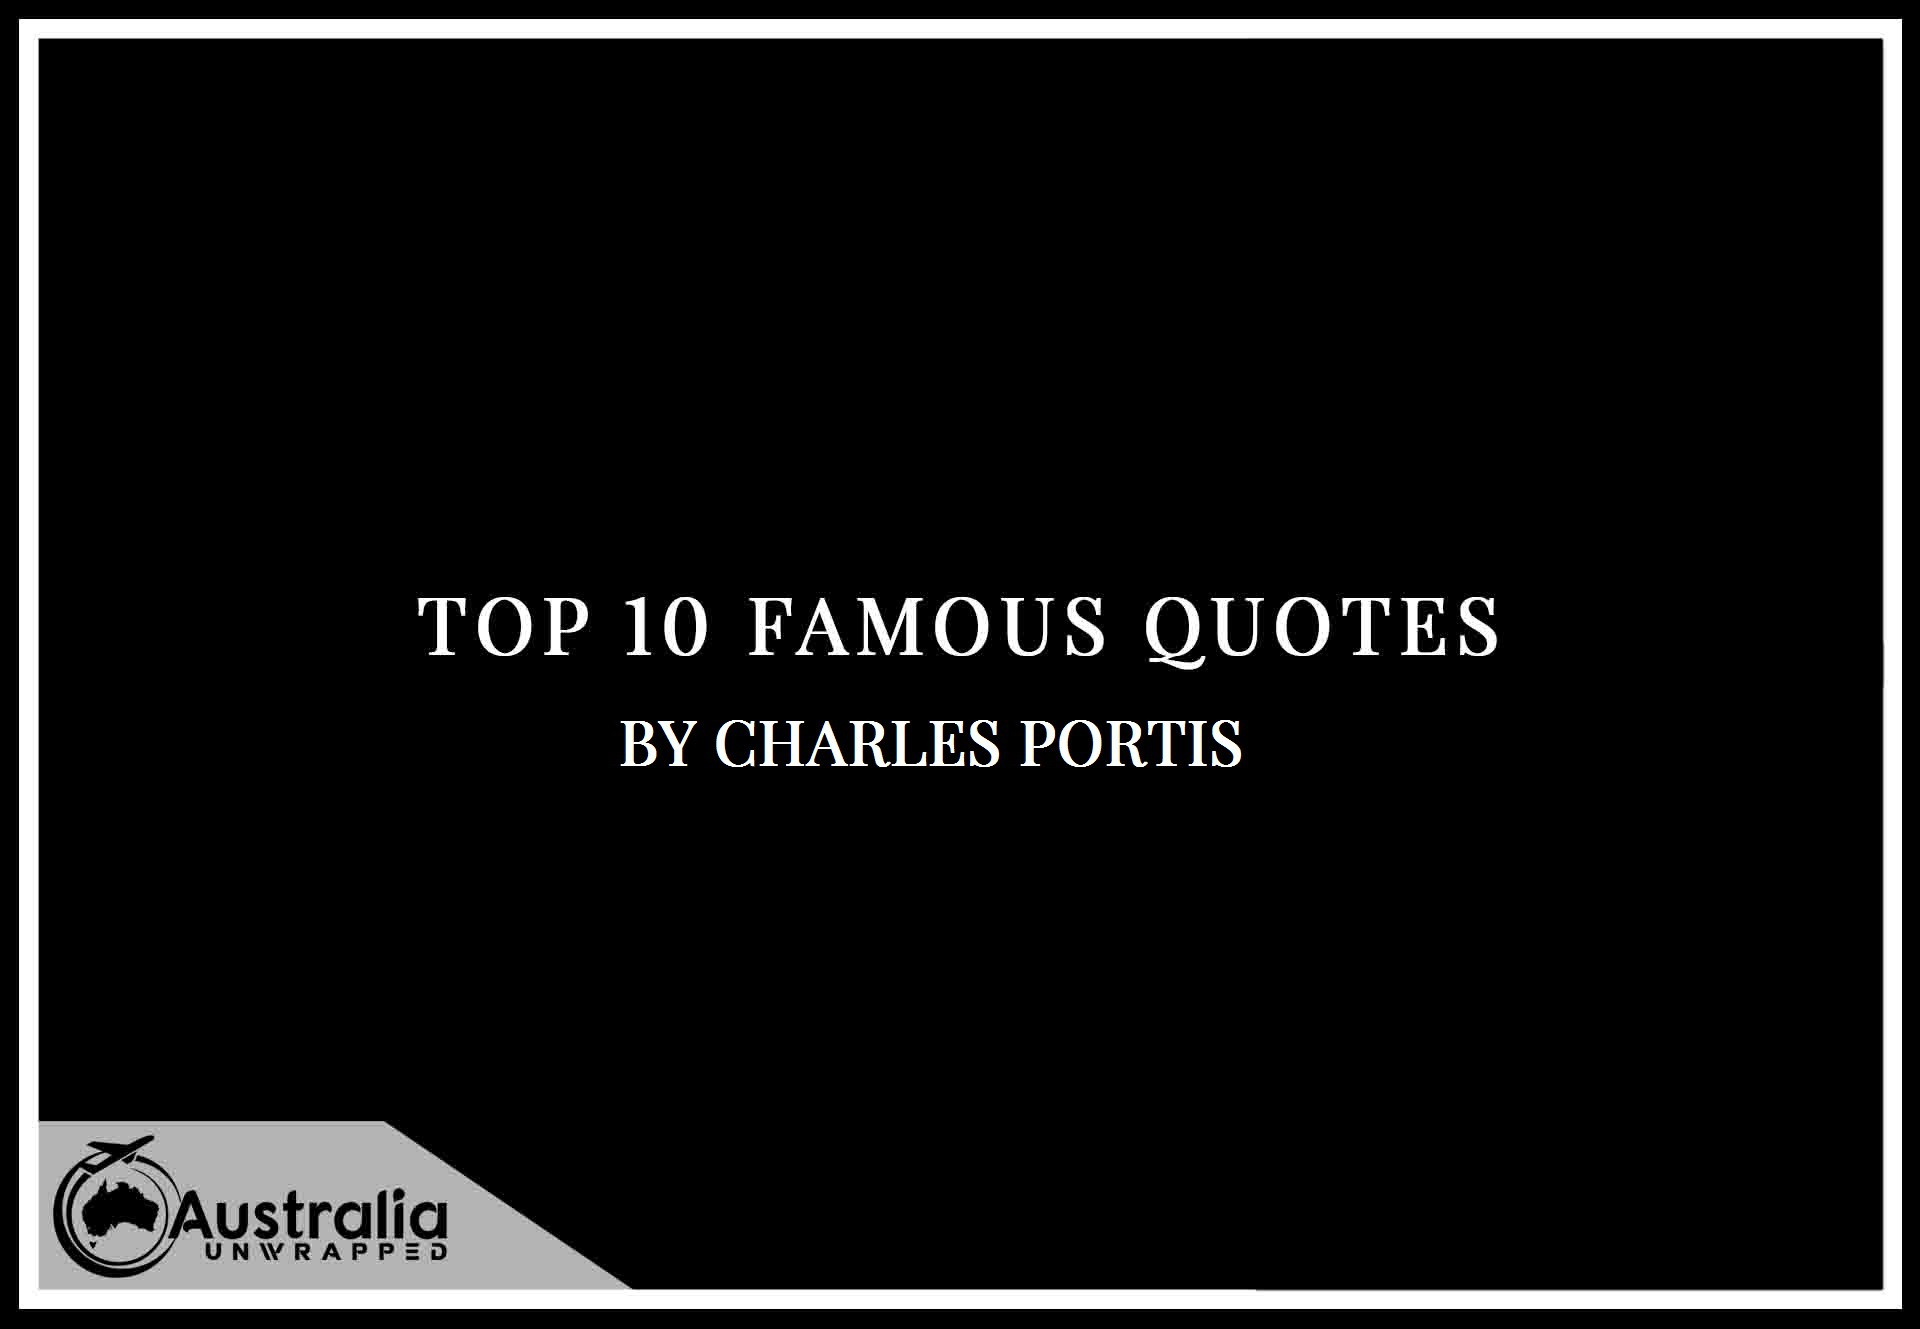 Charles Portis's Top 10 Popular and Famous Quotes